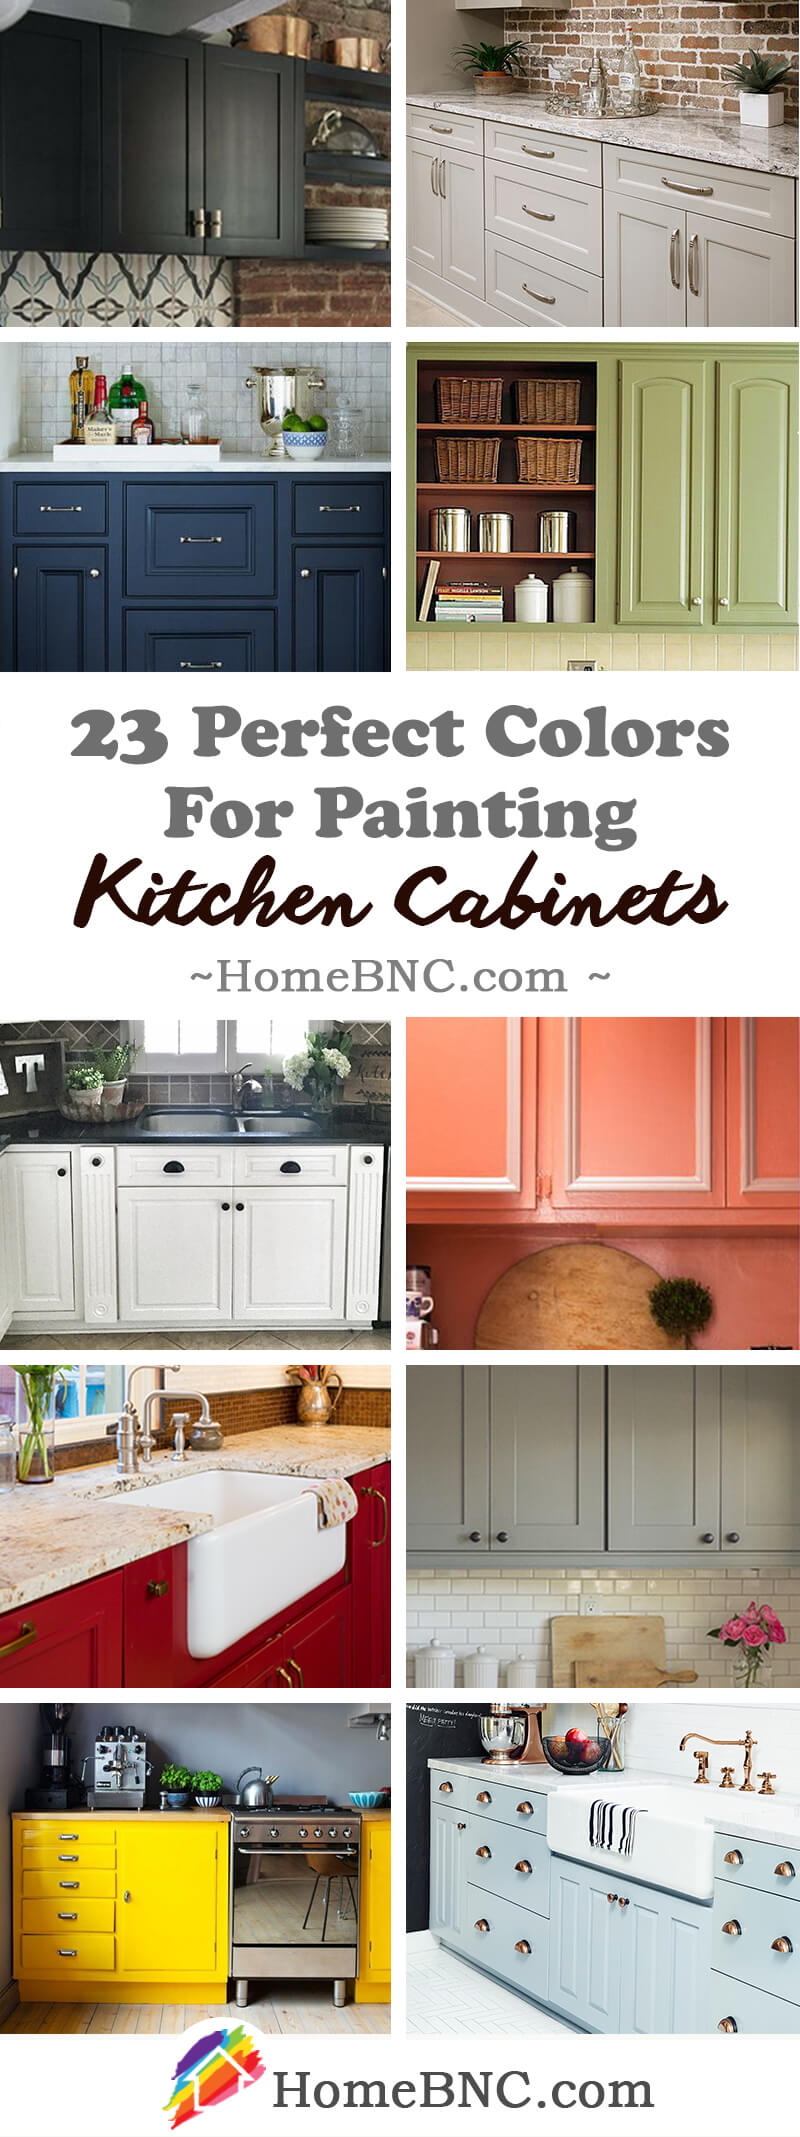 Remarkable 23 Best Kitchen Cabinets Painting Color Ideas And Designs Beutiful Home Inspiration Cosmmahrainfo